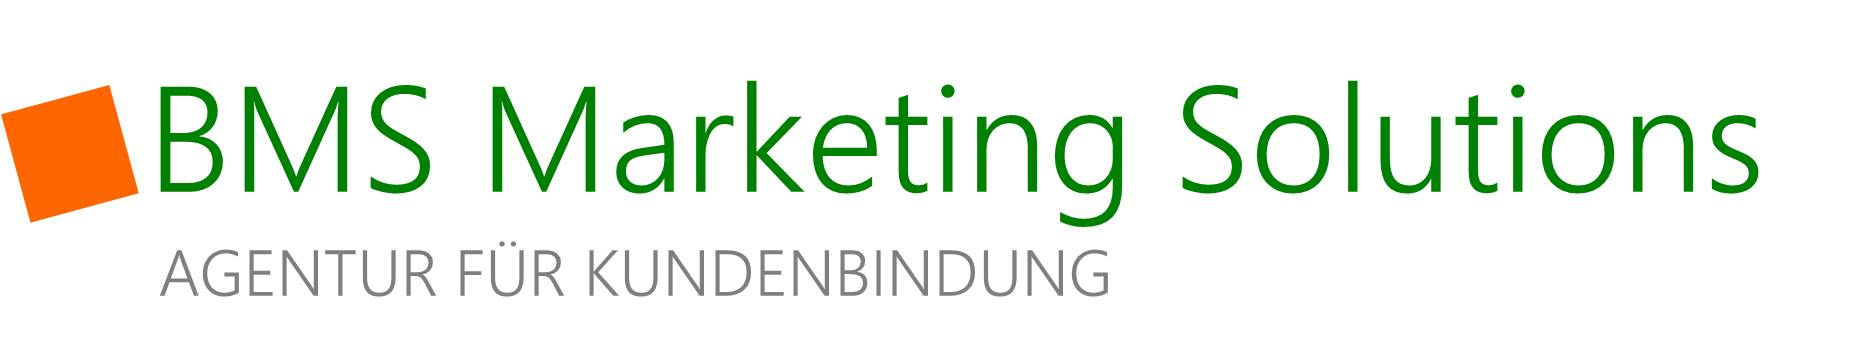 BMS Marketing Solutions | Agentur für Kundenbindung